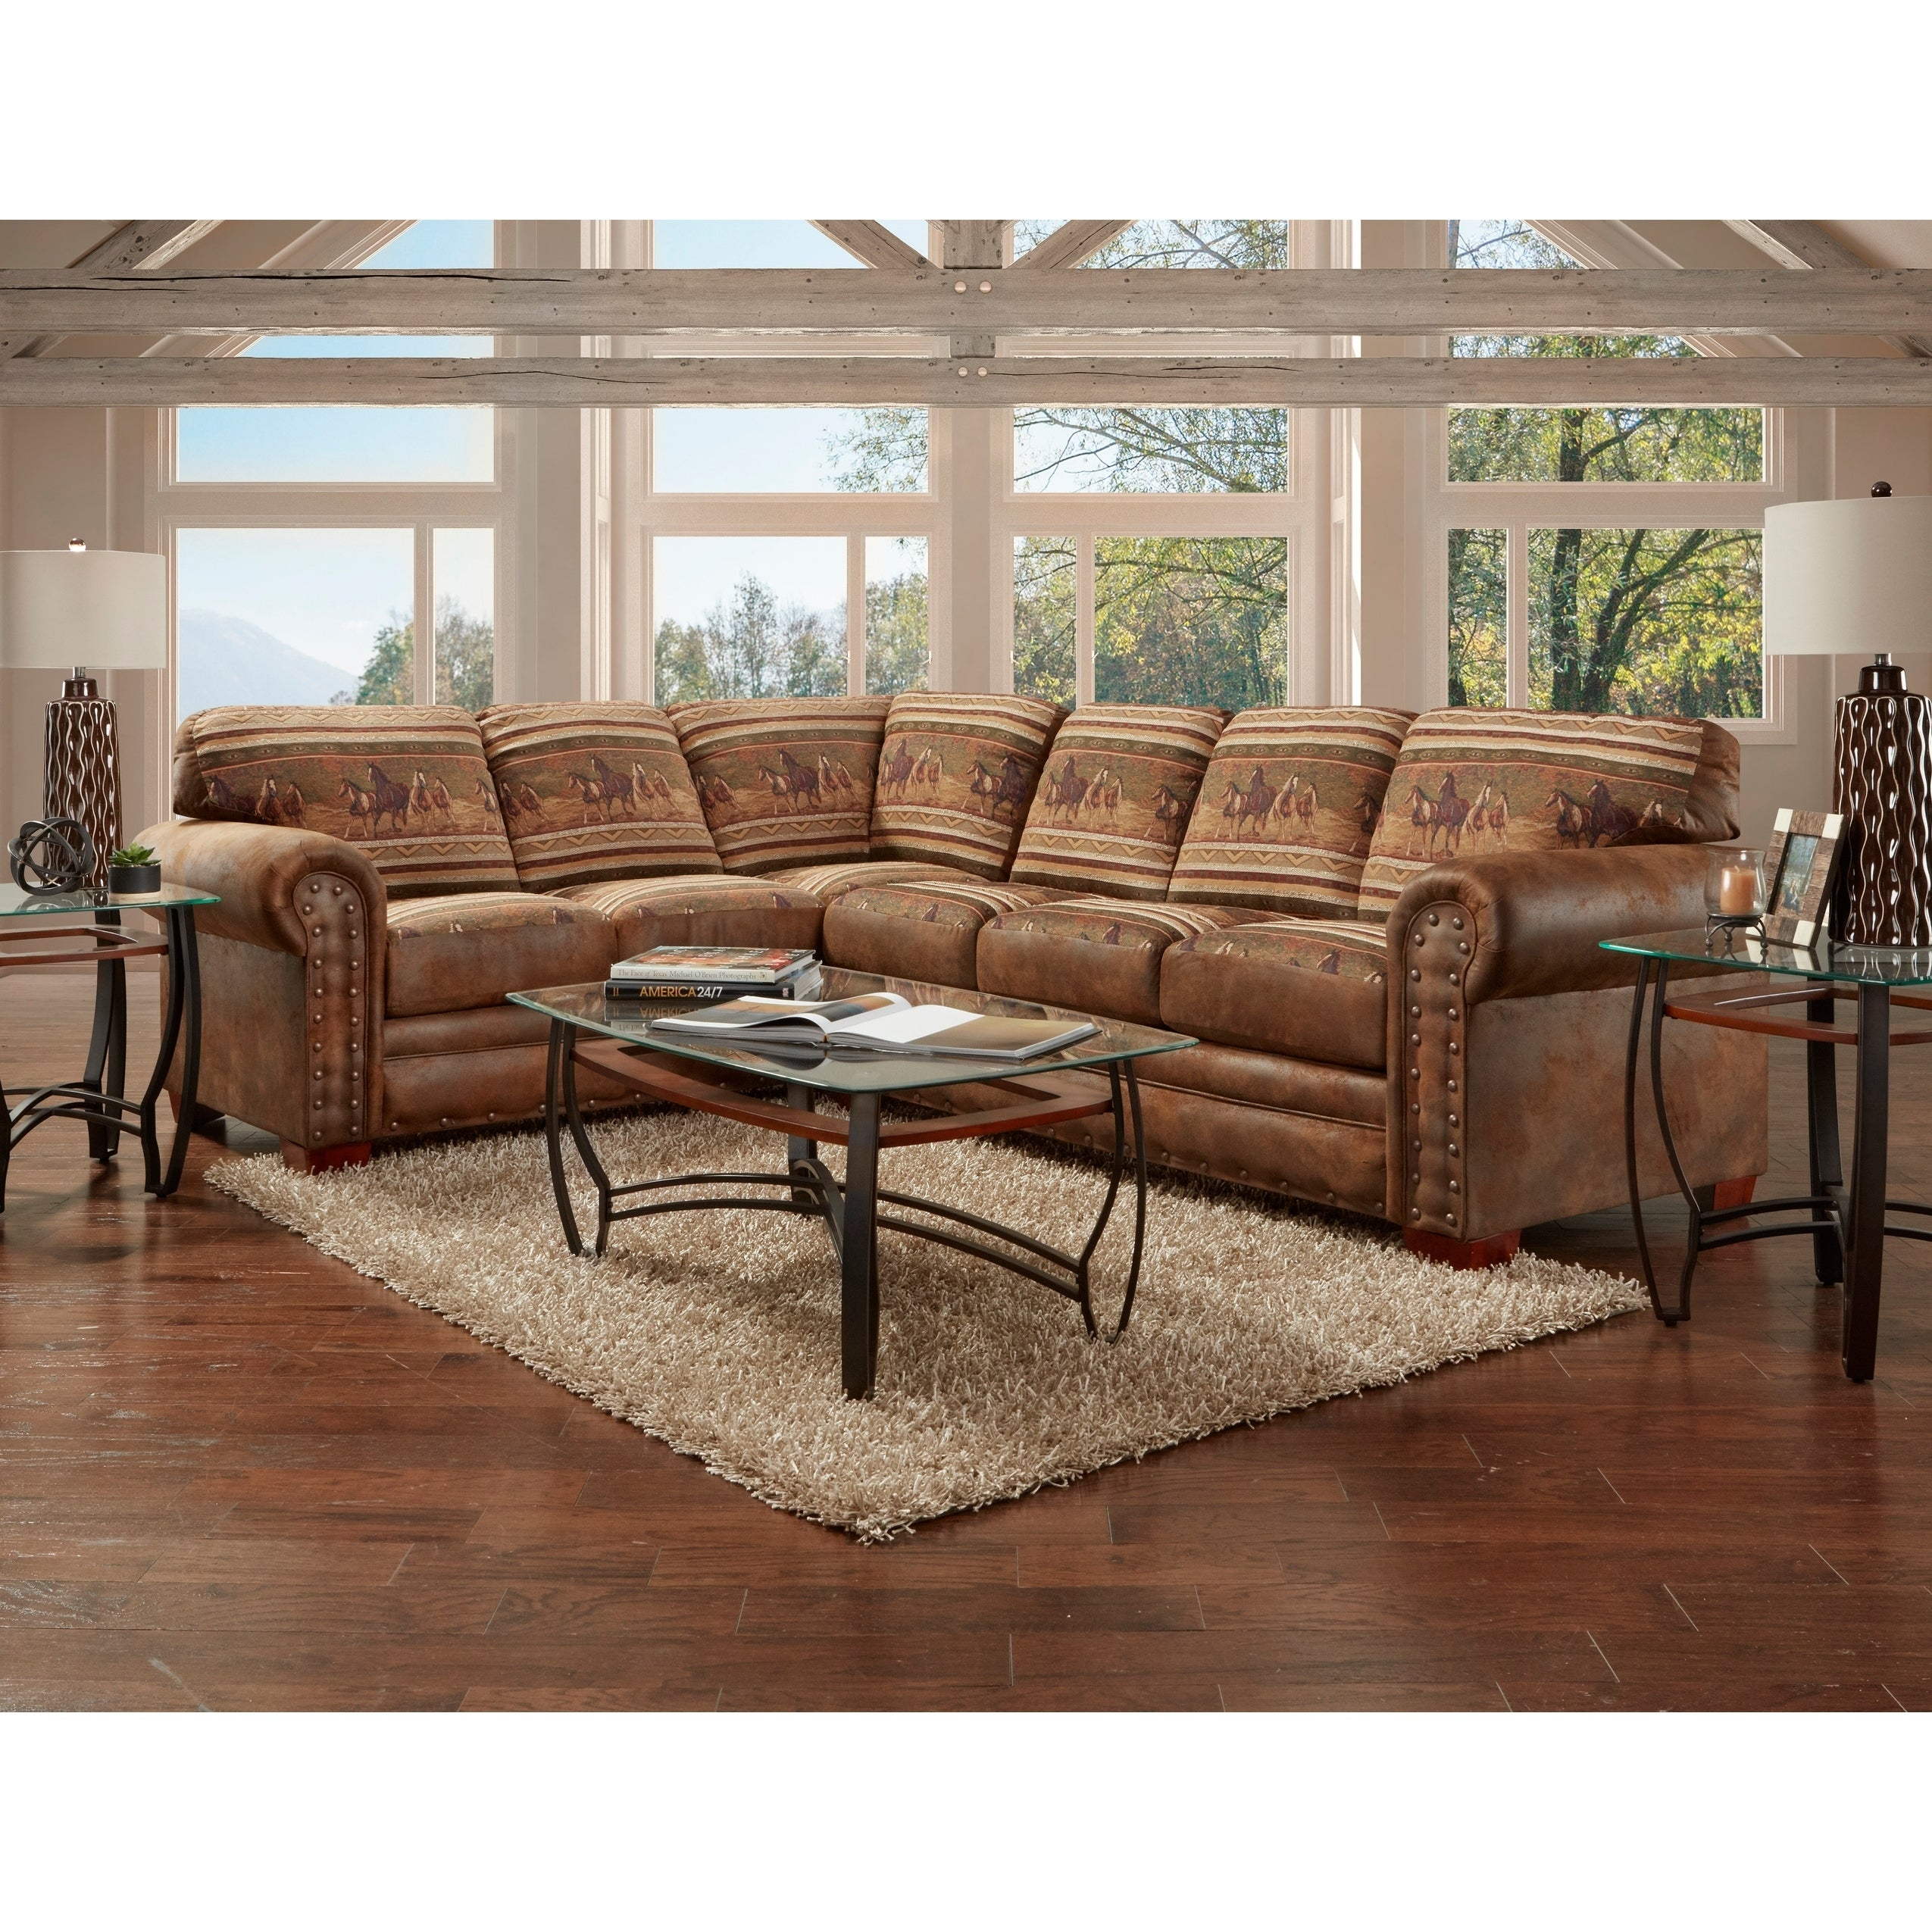 American Furniture Classics Model 8506 40k Wild Horses Two Piece Sectional Sofa 8 X 10